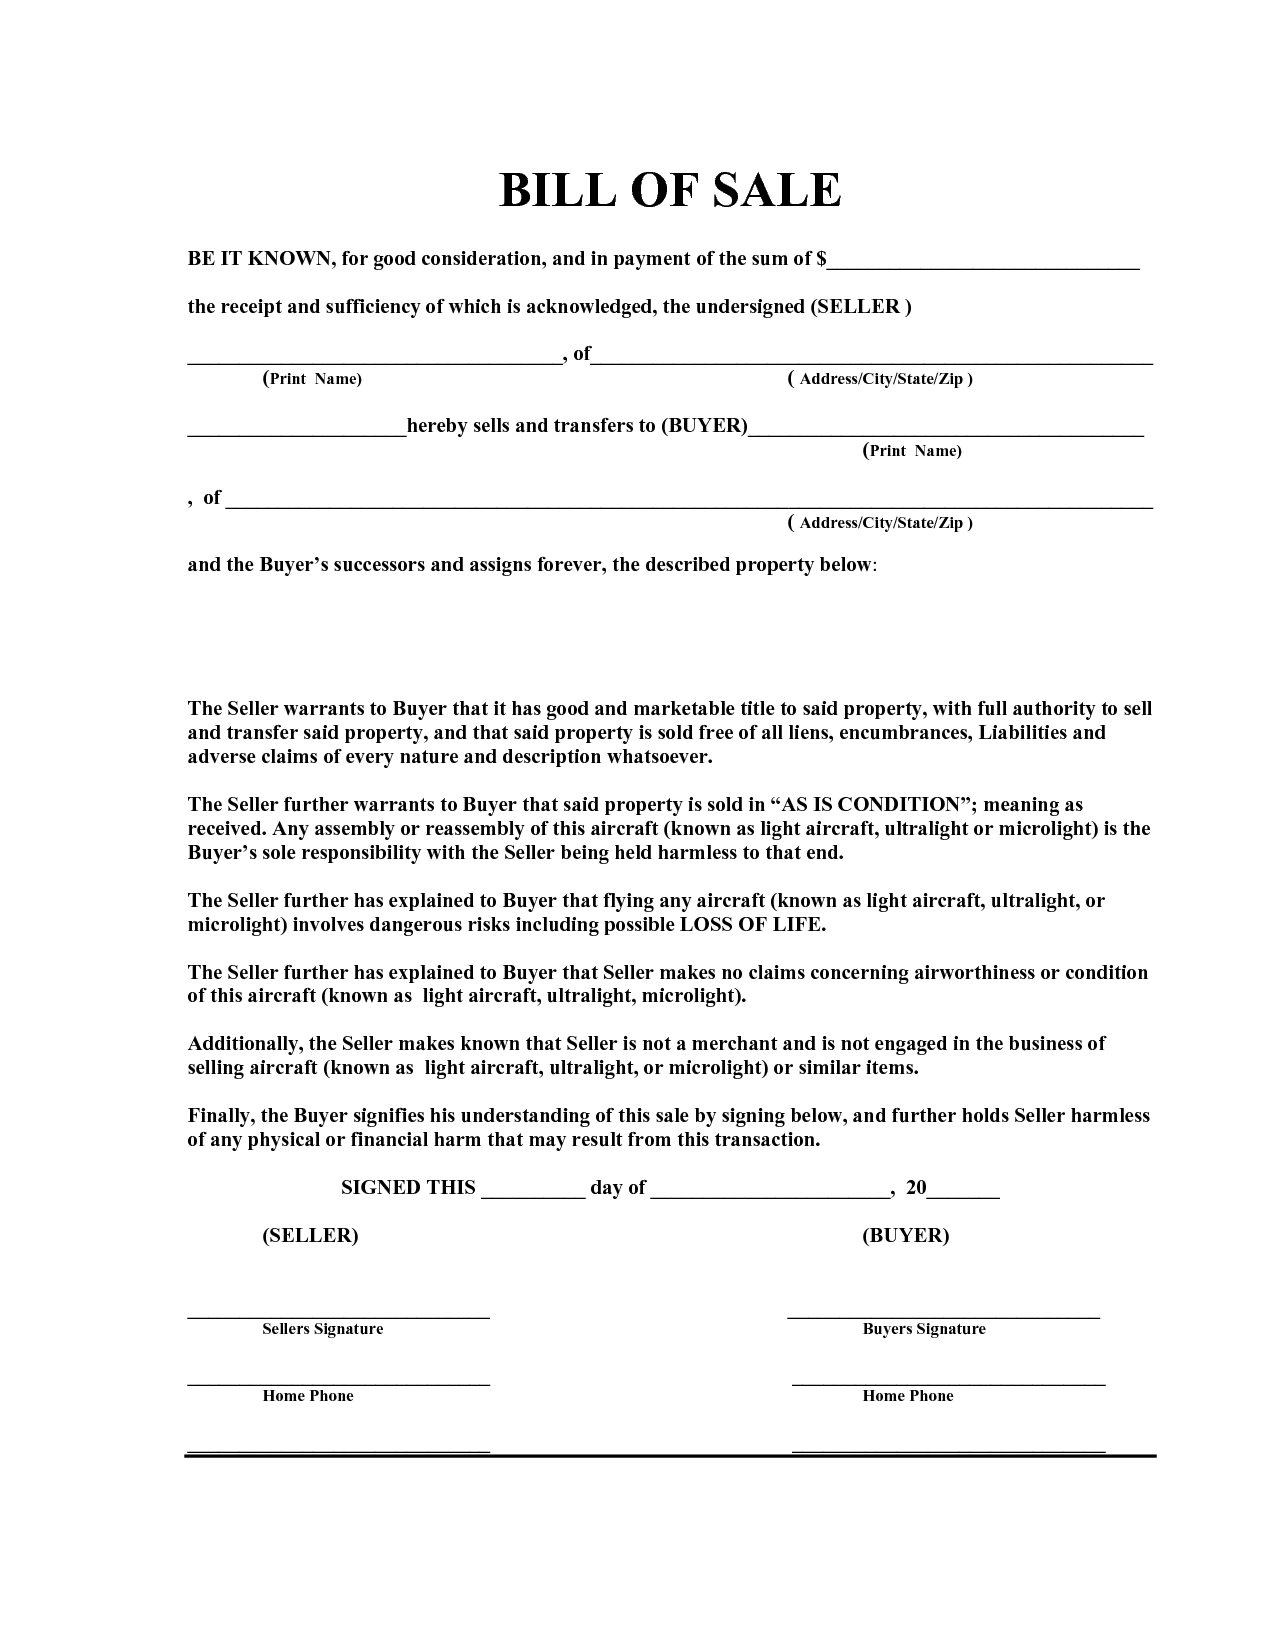 This is a graphic of Clean Printable Bill of Sale Pdf